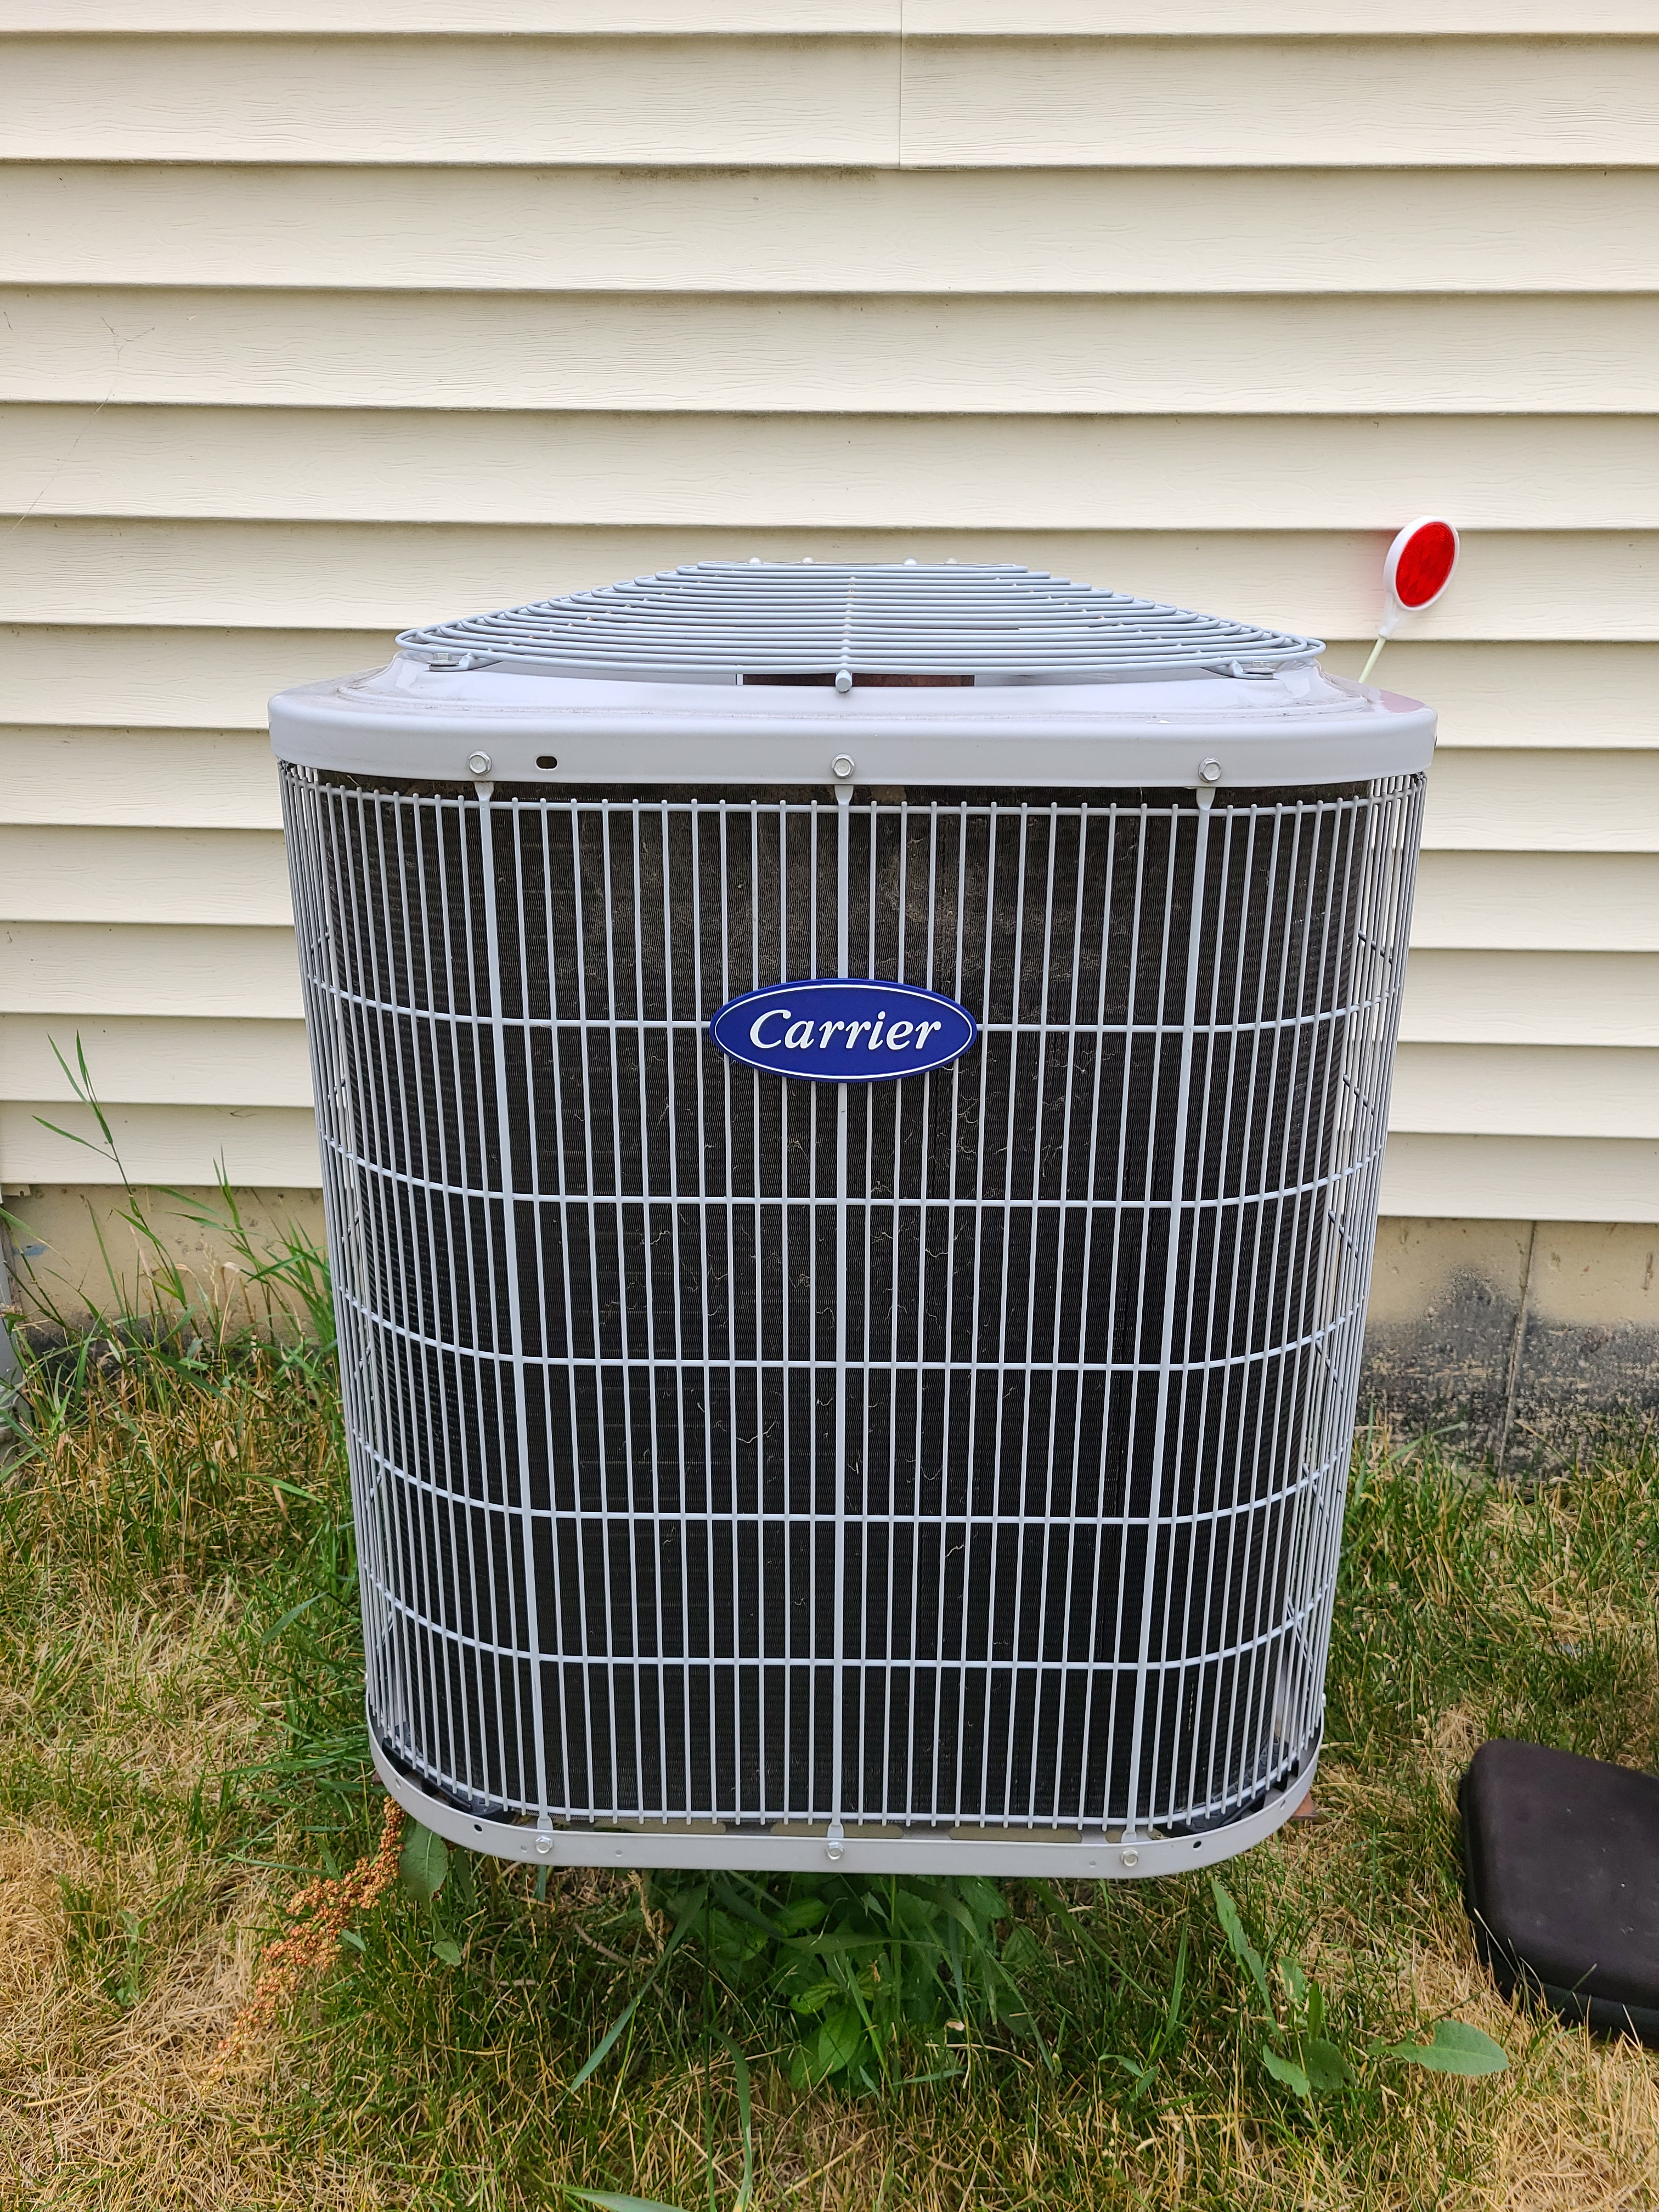 Carrier air-conditioning